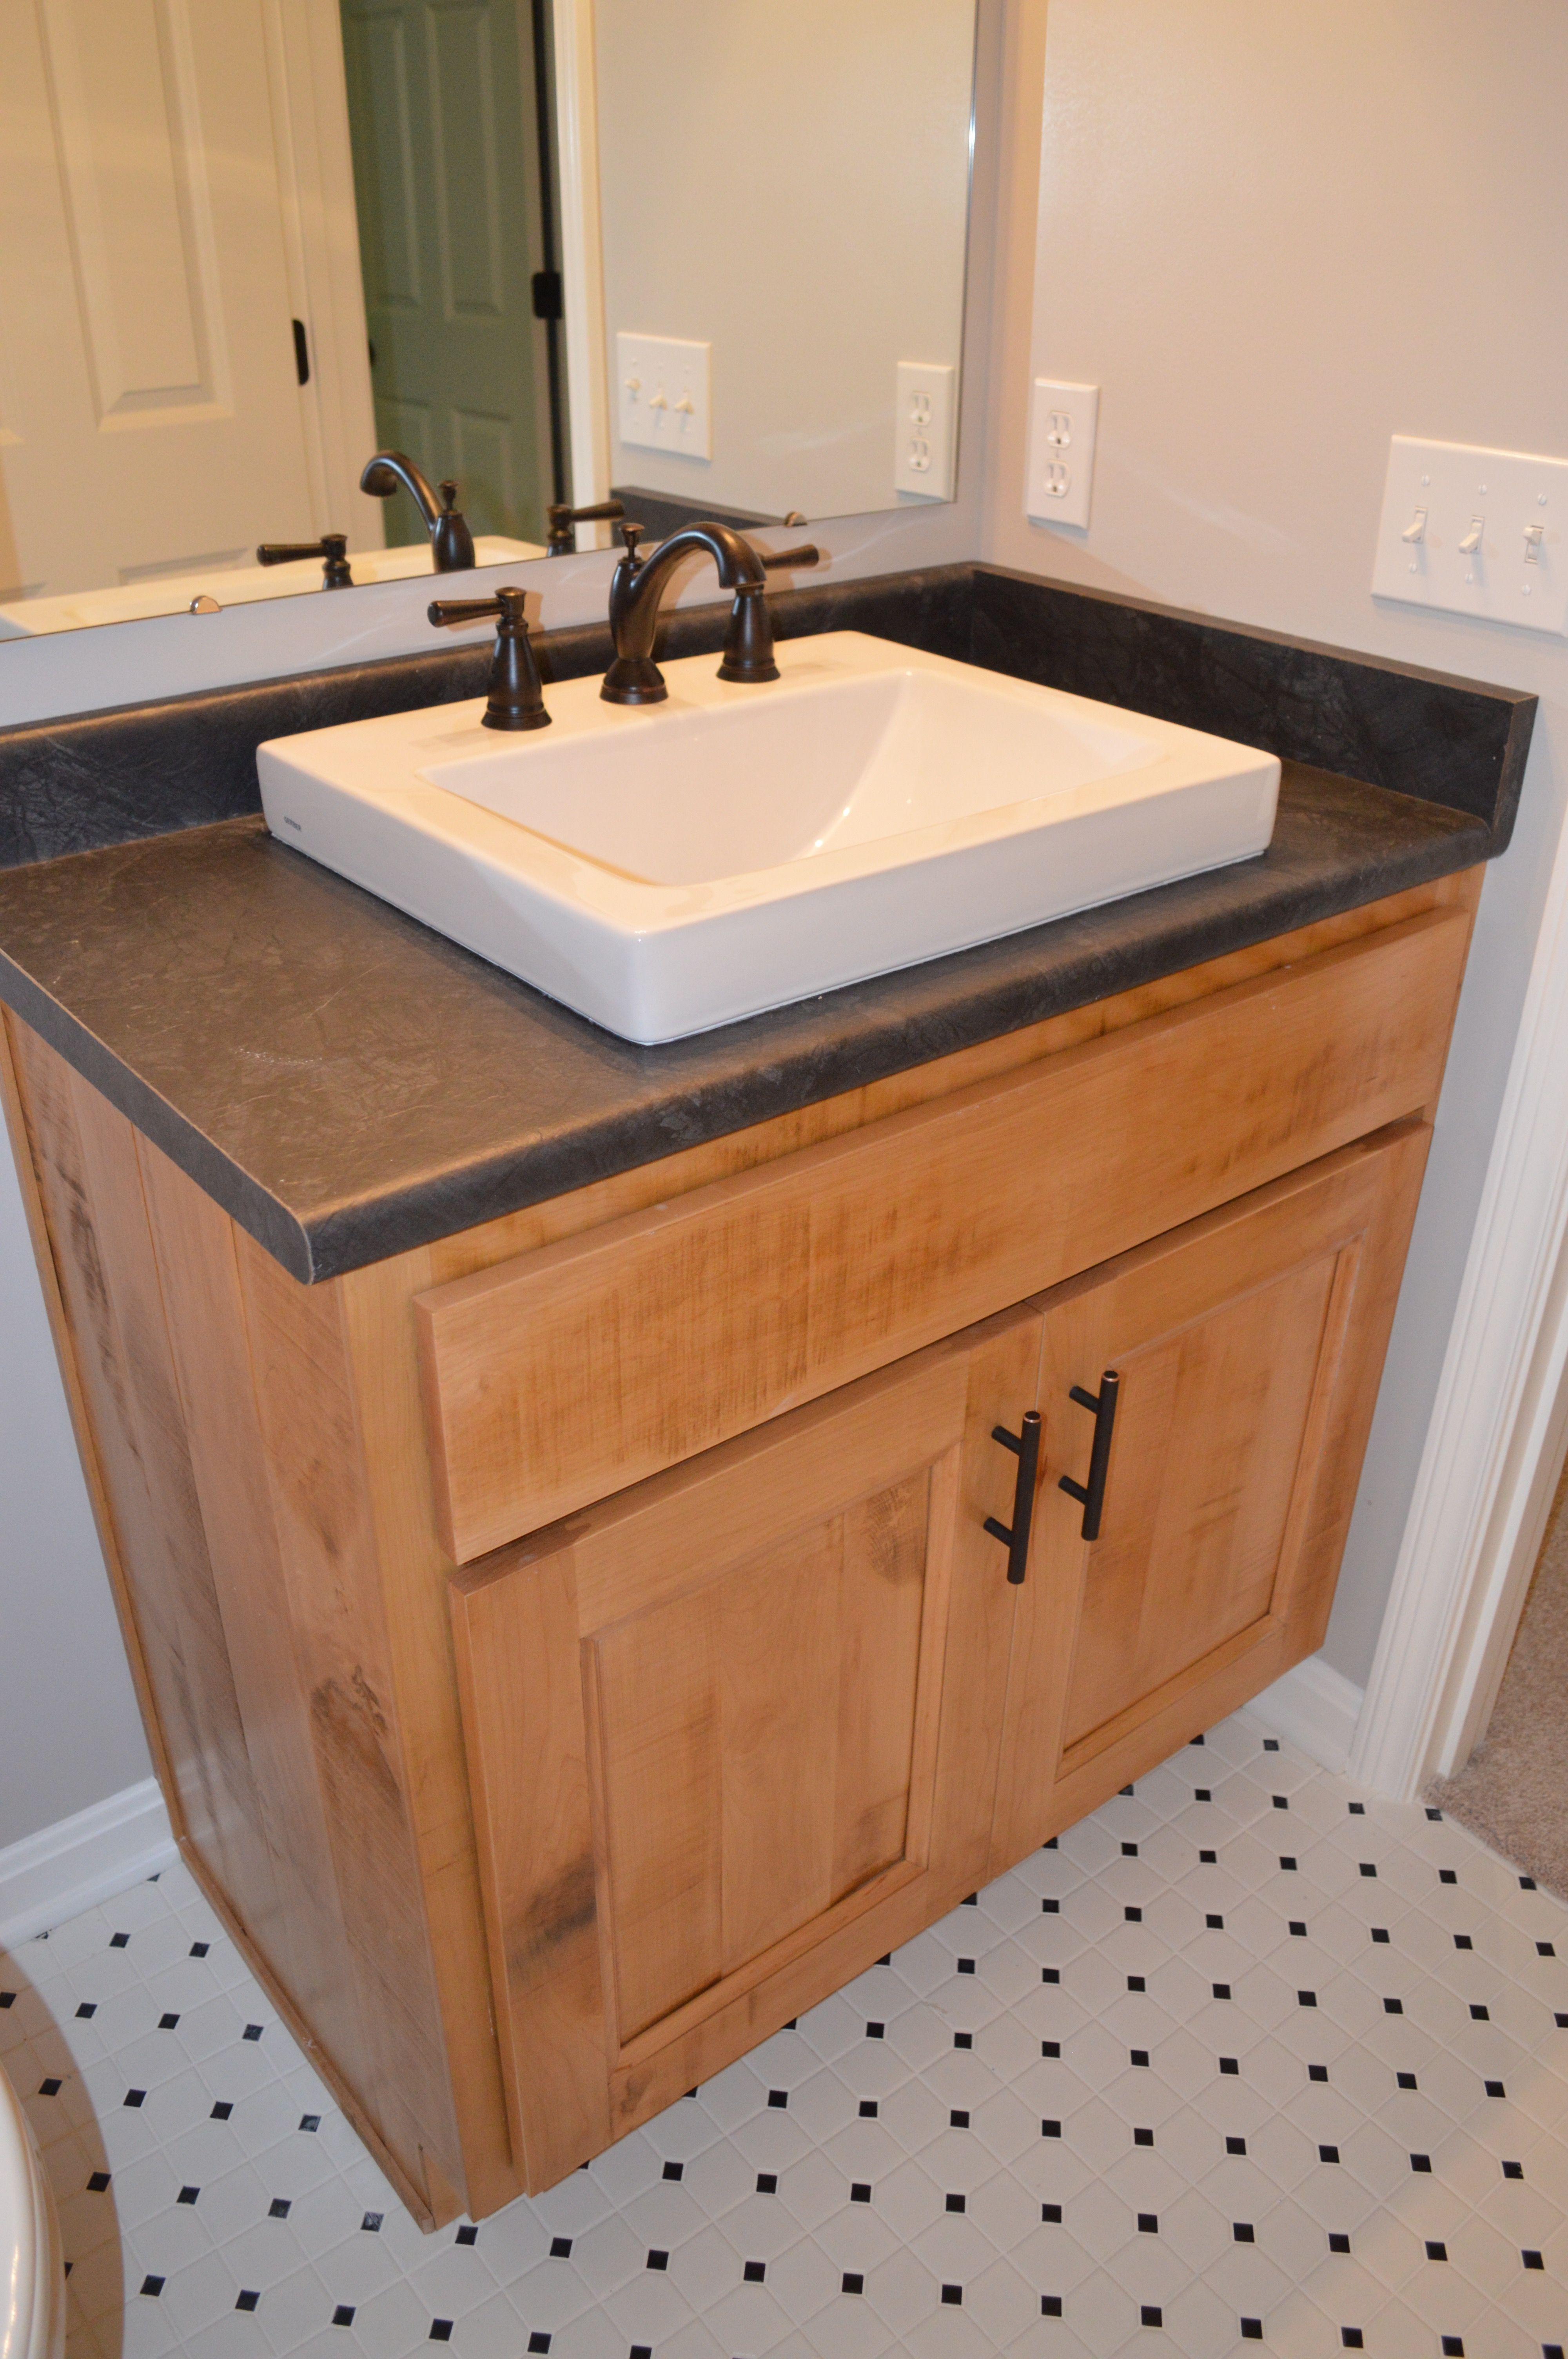 Cutest Vanity Ever Stained Barn Wood Finish Polkadot Ceramic Tile